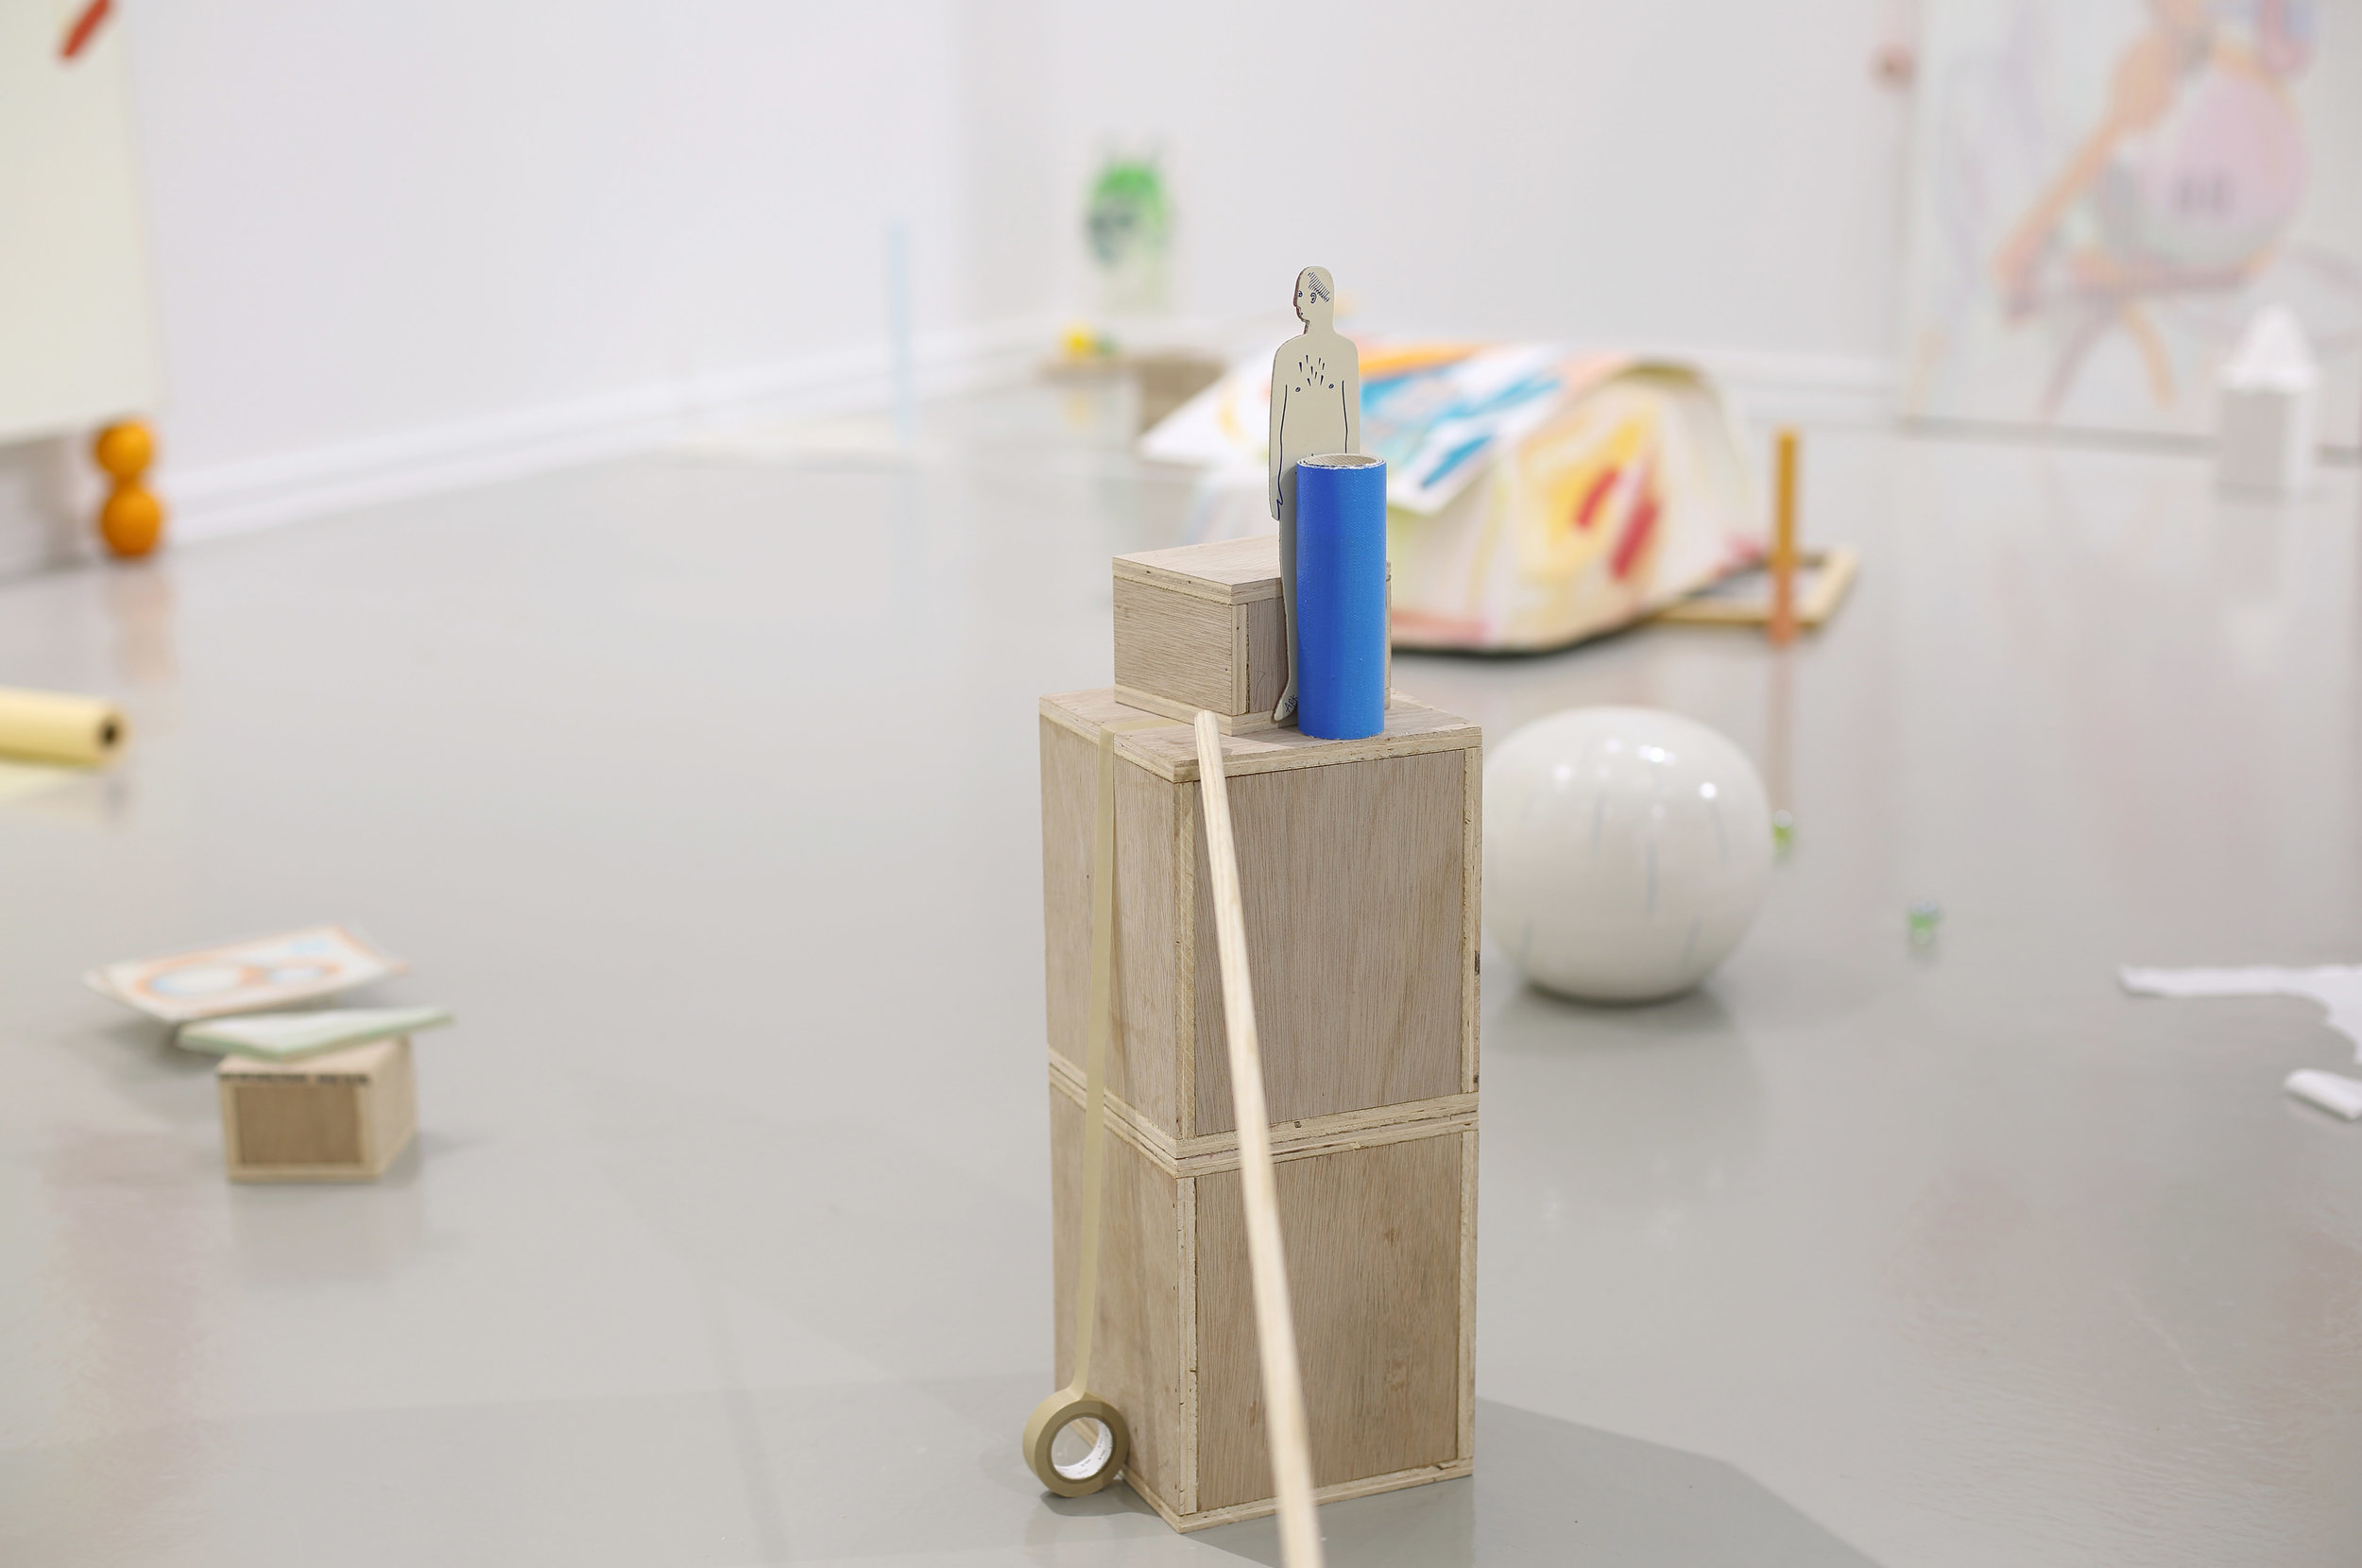 Man in crisis    2019, Rolled painting, ready-made object, masking tape, wood box, wood stick, orange, Dimensions variable